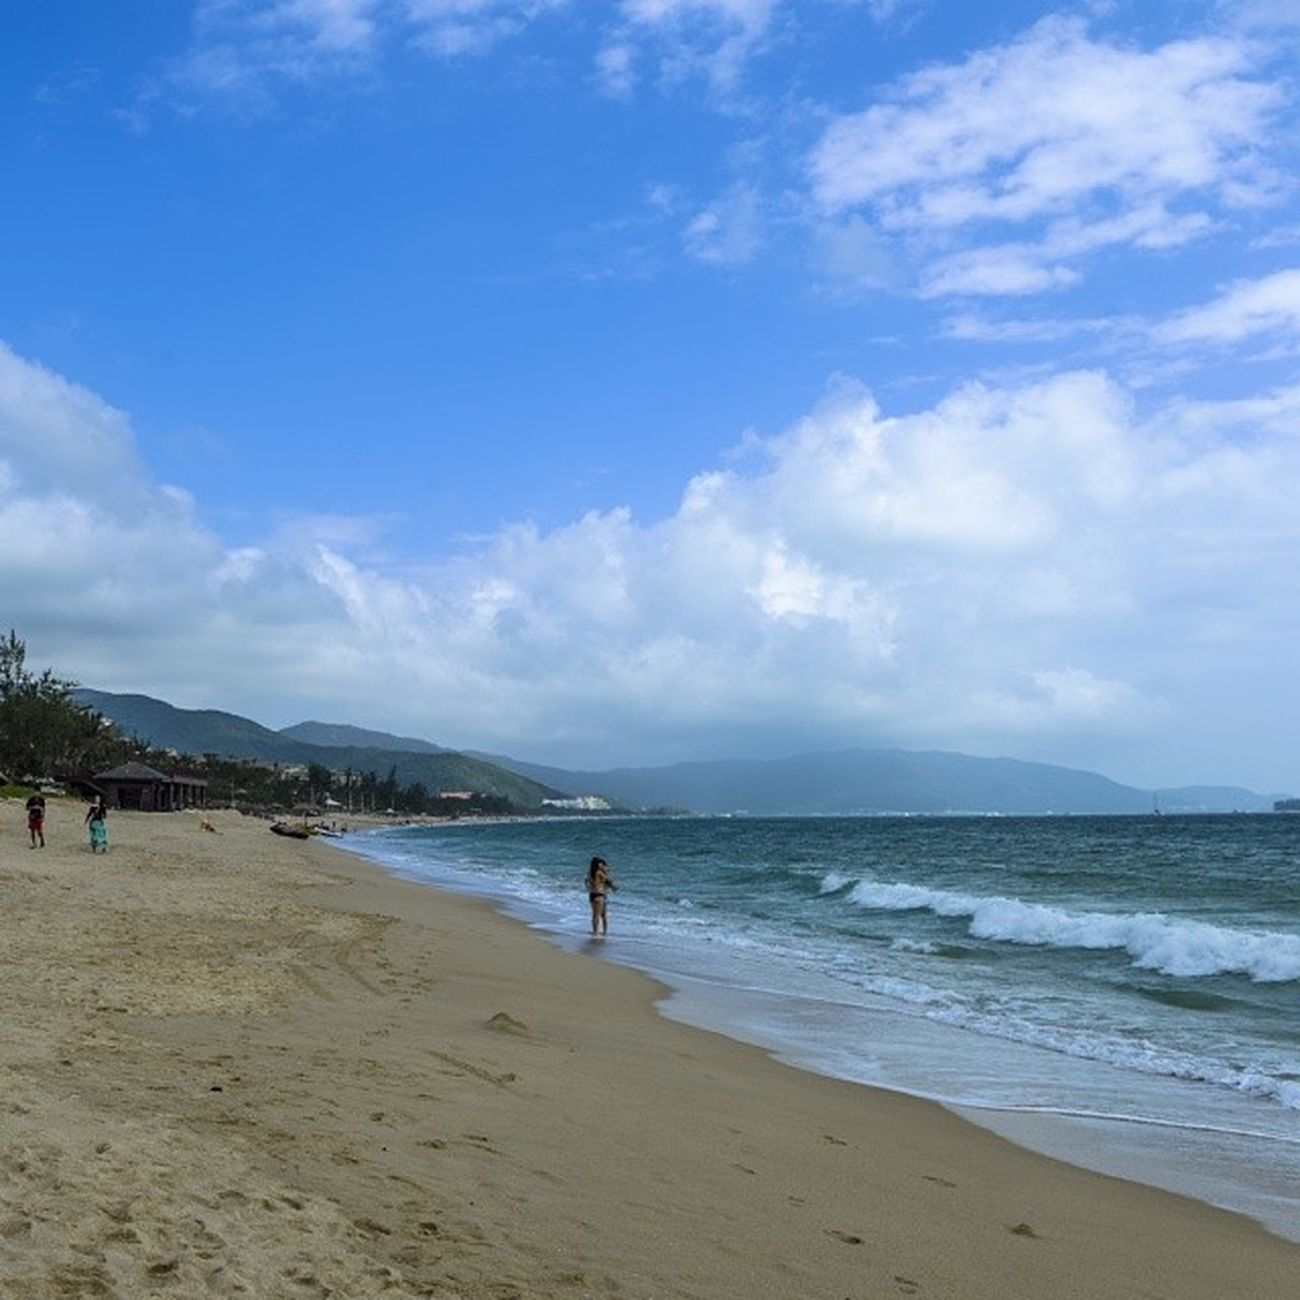 Sanya Bay Yalong Hainan sky blue sand clear sunny cloud people holiday vacation relax 三亚 海南 亚龙湾 蓝天 沙滩 晴天 云 假期 放松